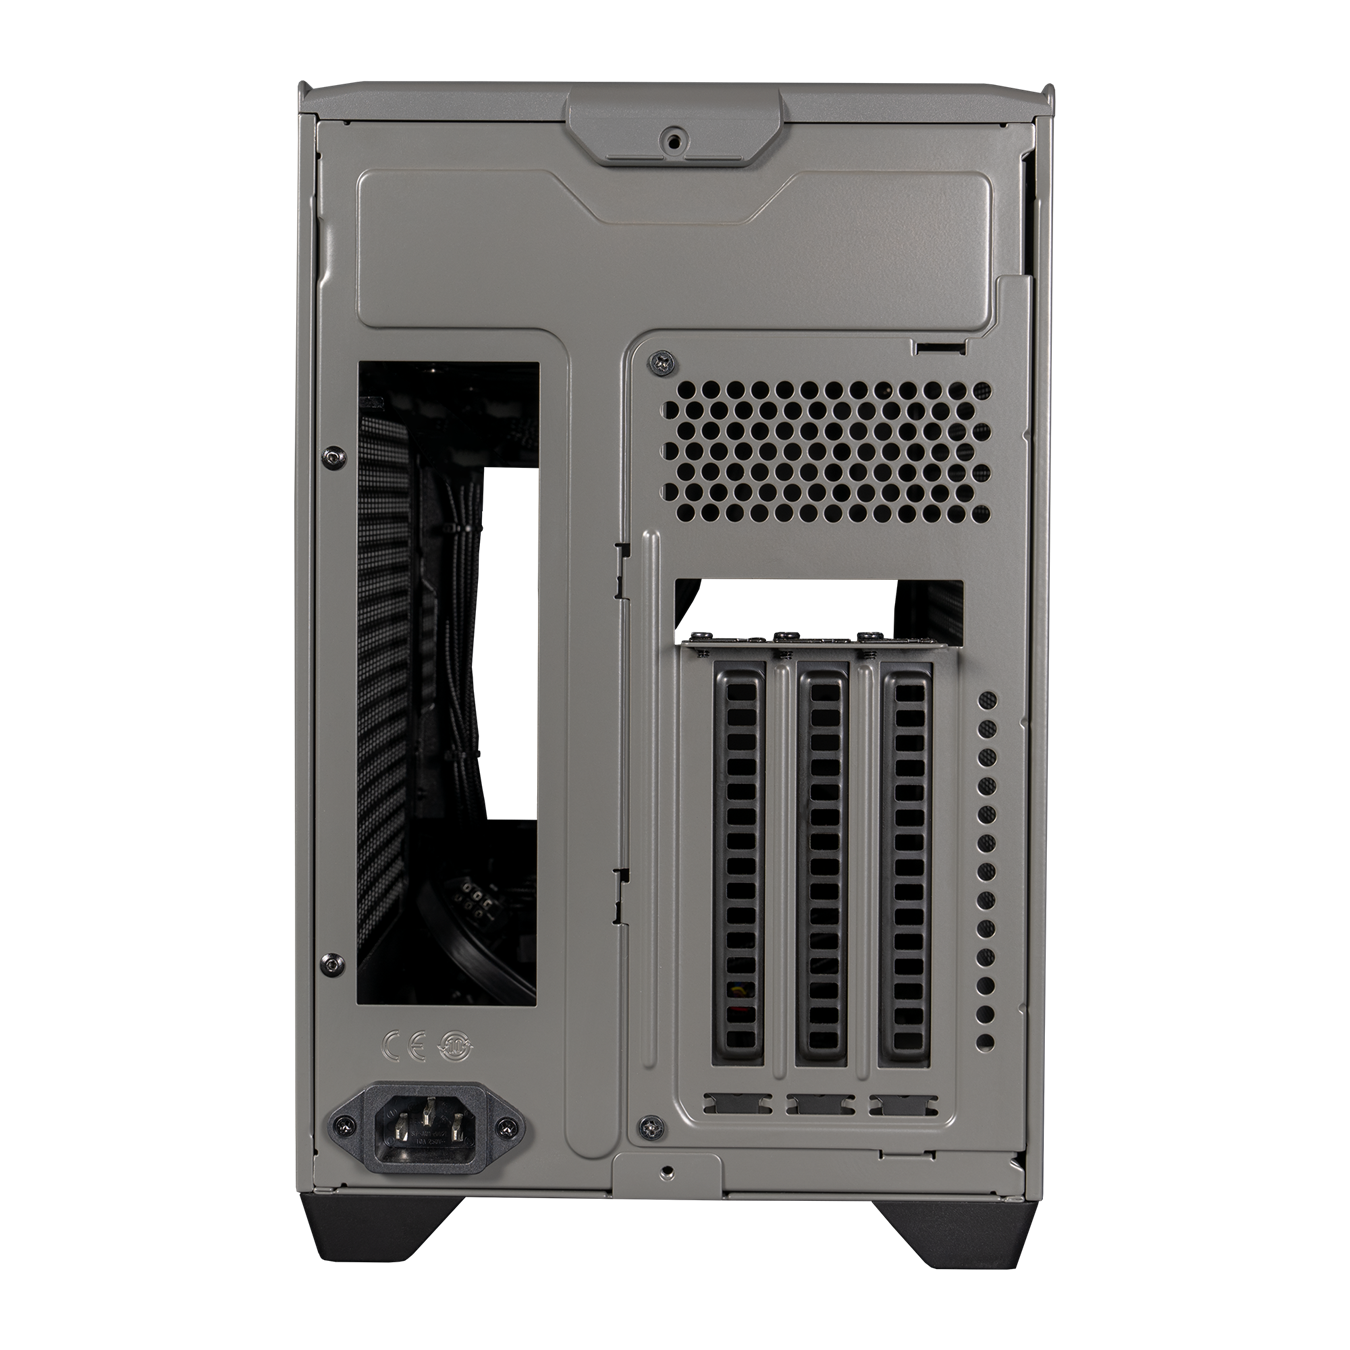 Back panel of NR200P MAX. The I/O cutout is on the left and three vertical PCI slots are available on the right.